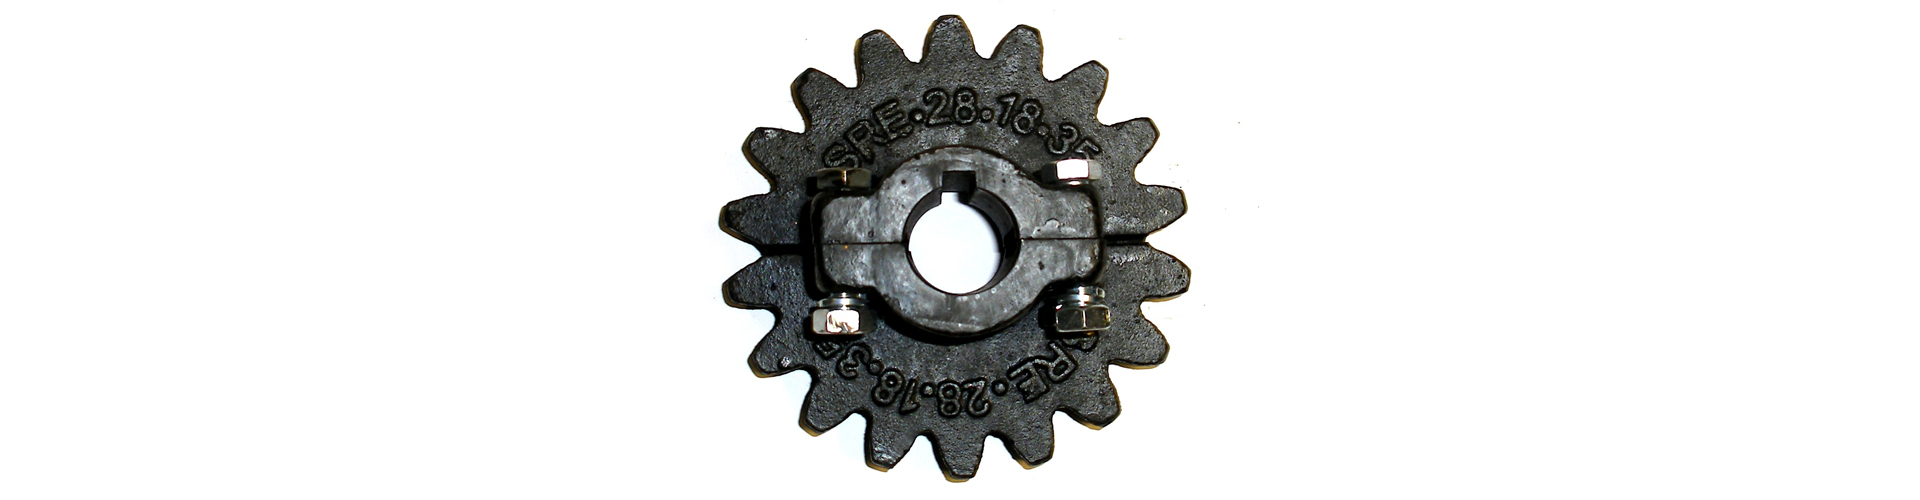 Reekie Cast Cross Conveyor Sprocket